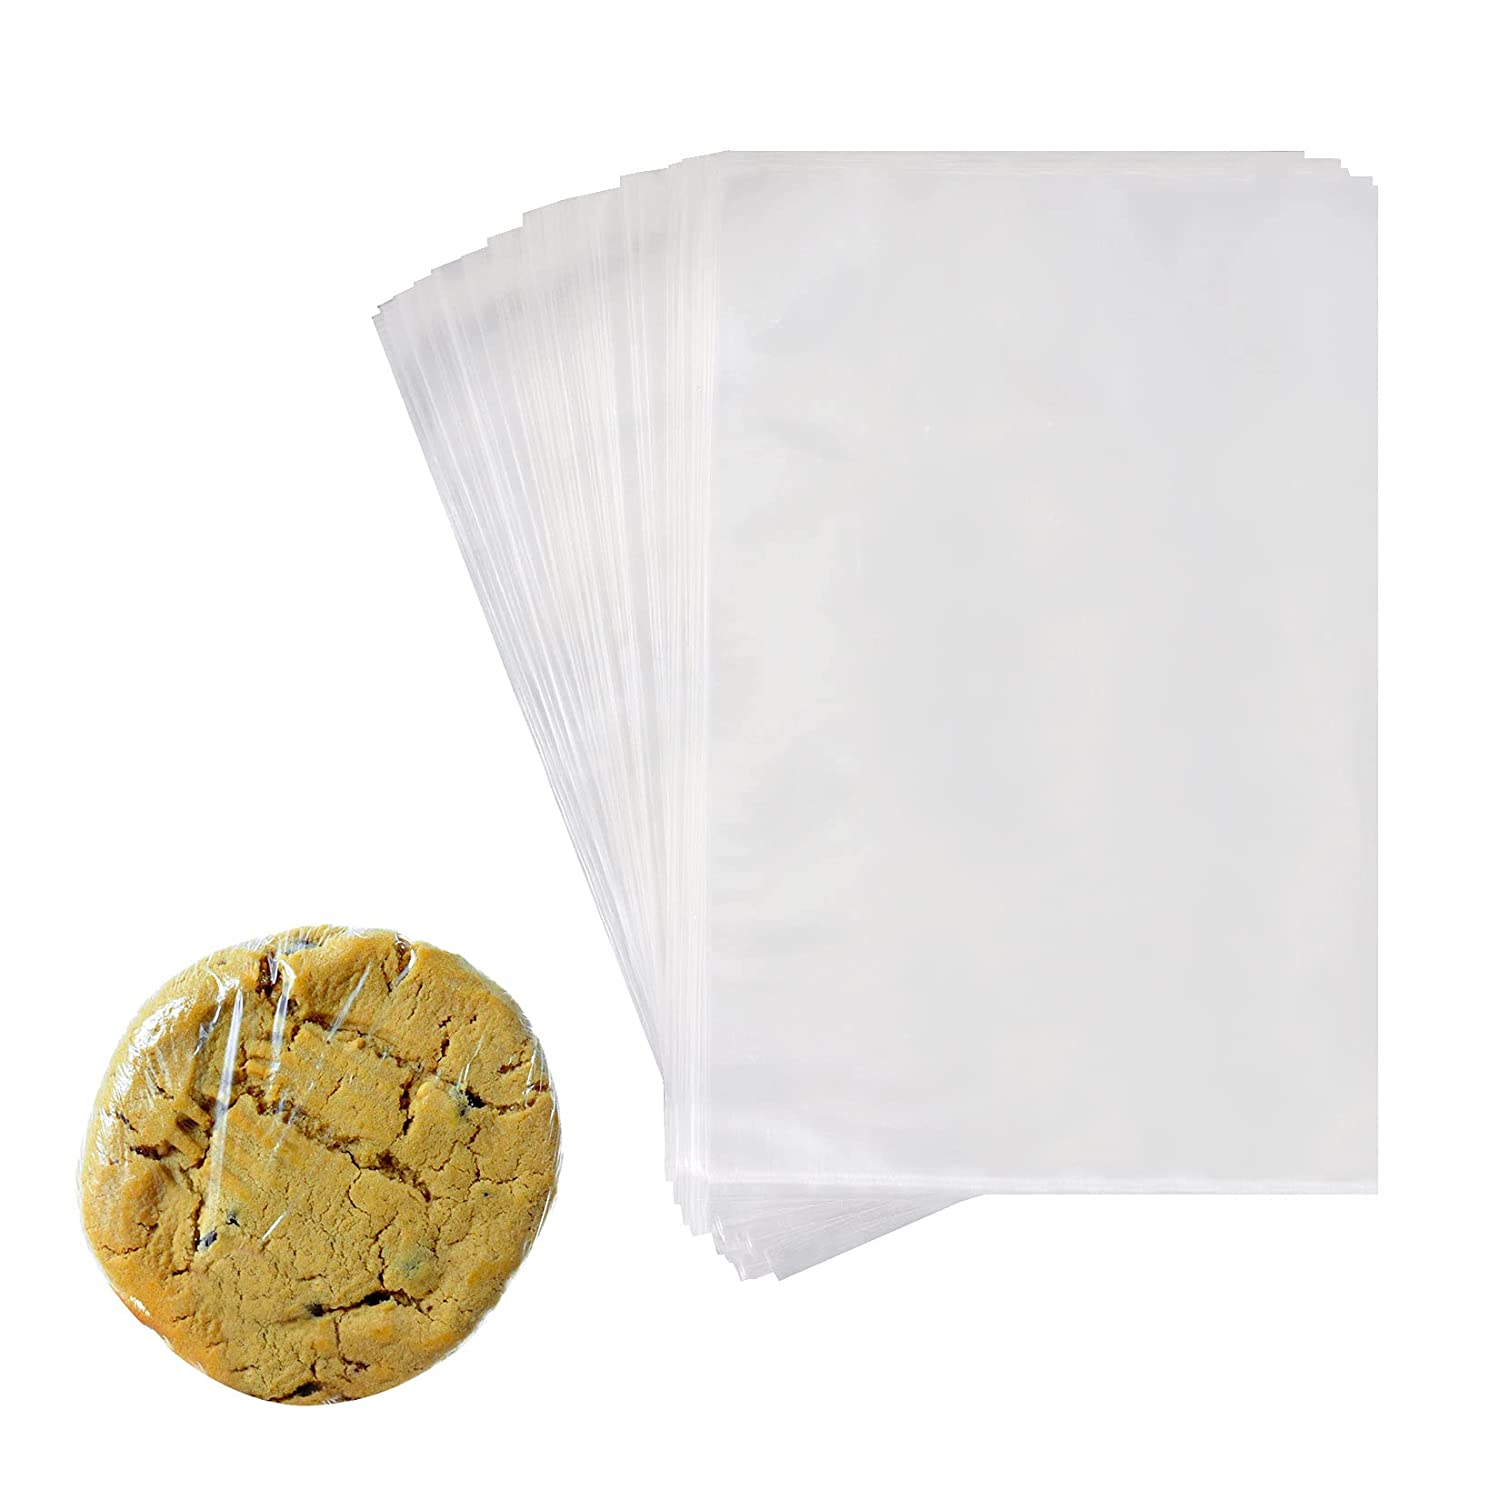 Food Grade Shrink Wrap Bags for Cookies,Cake,100Pcs 4x6 Inch Cle